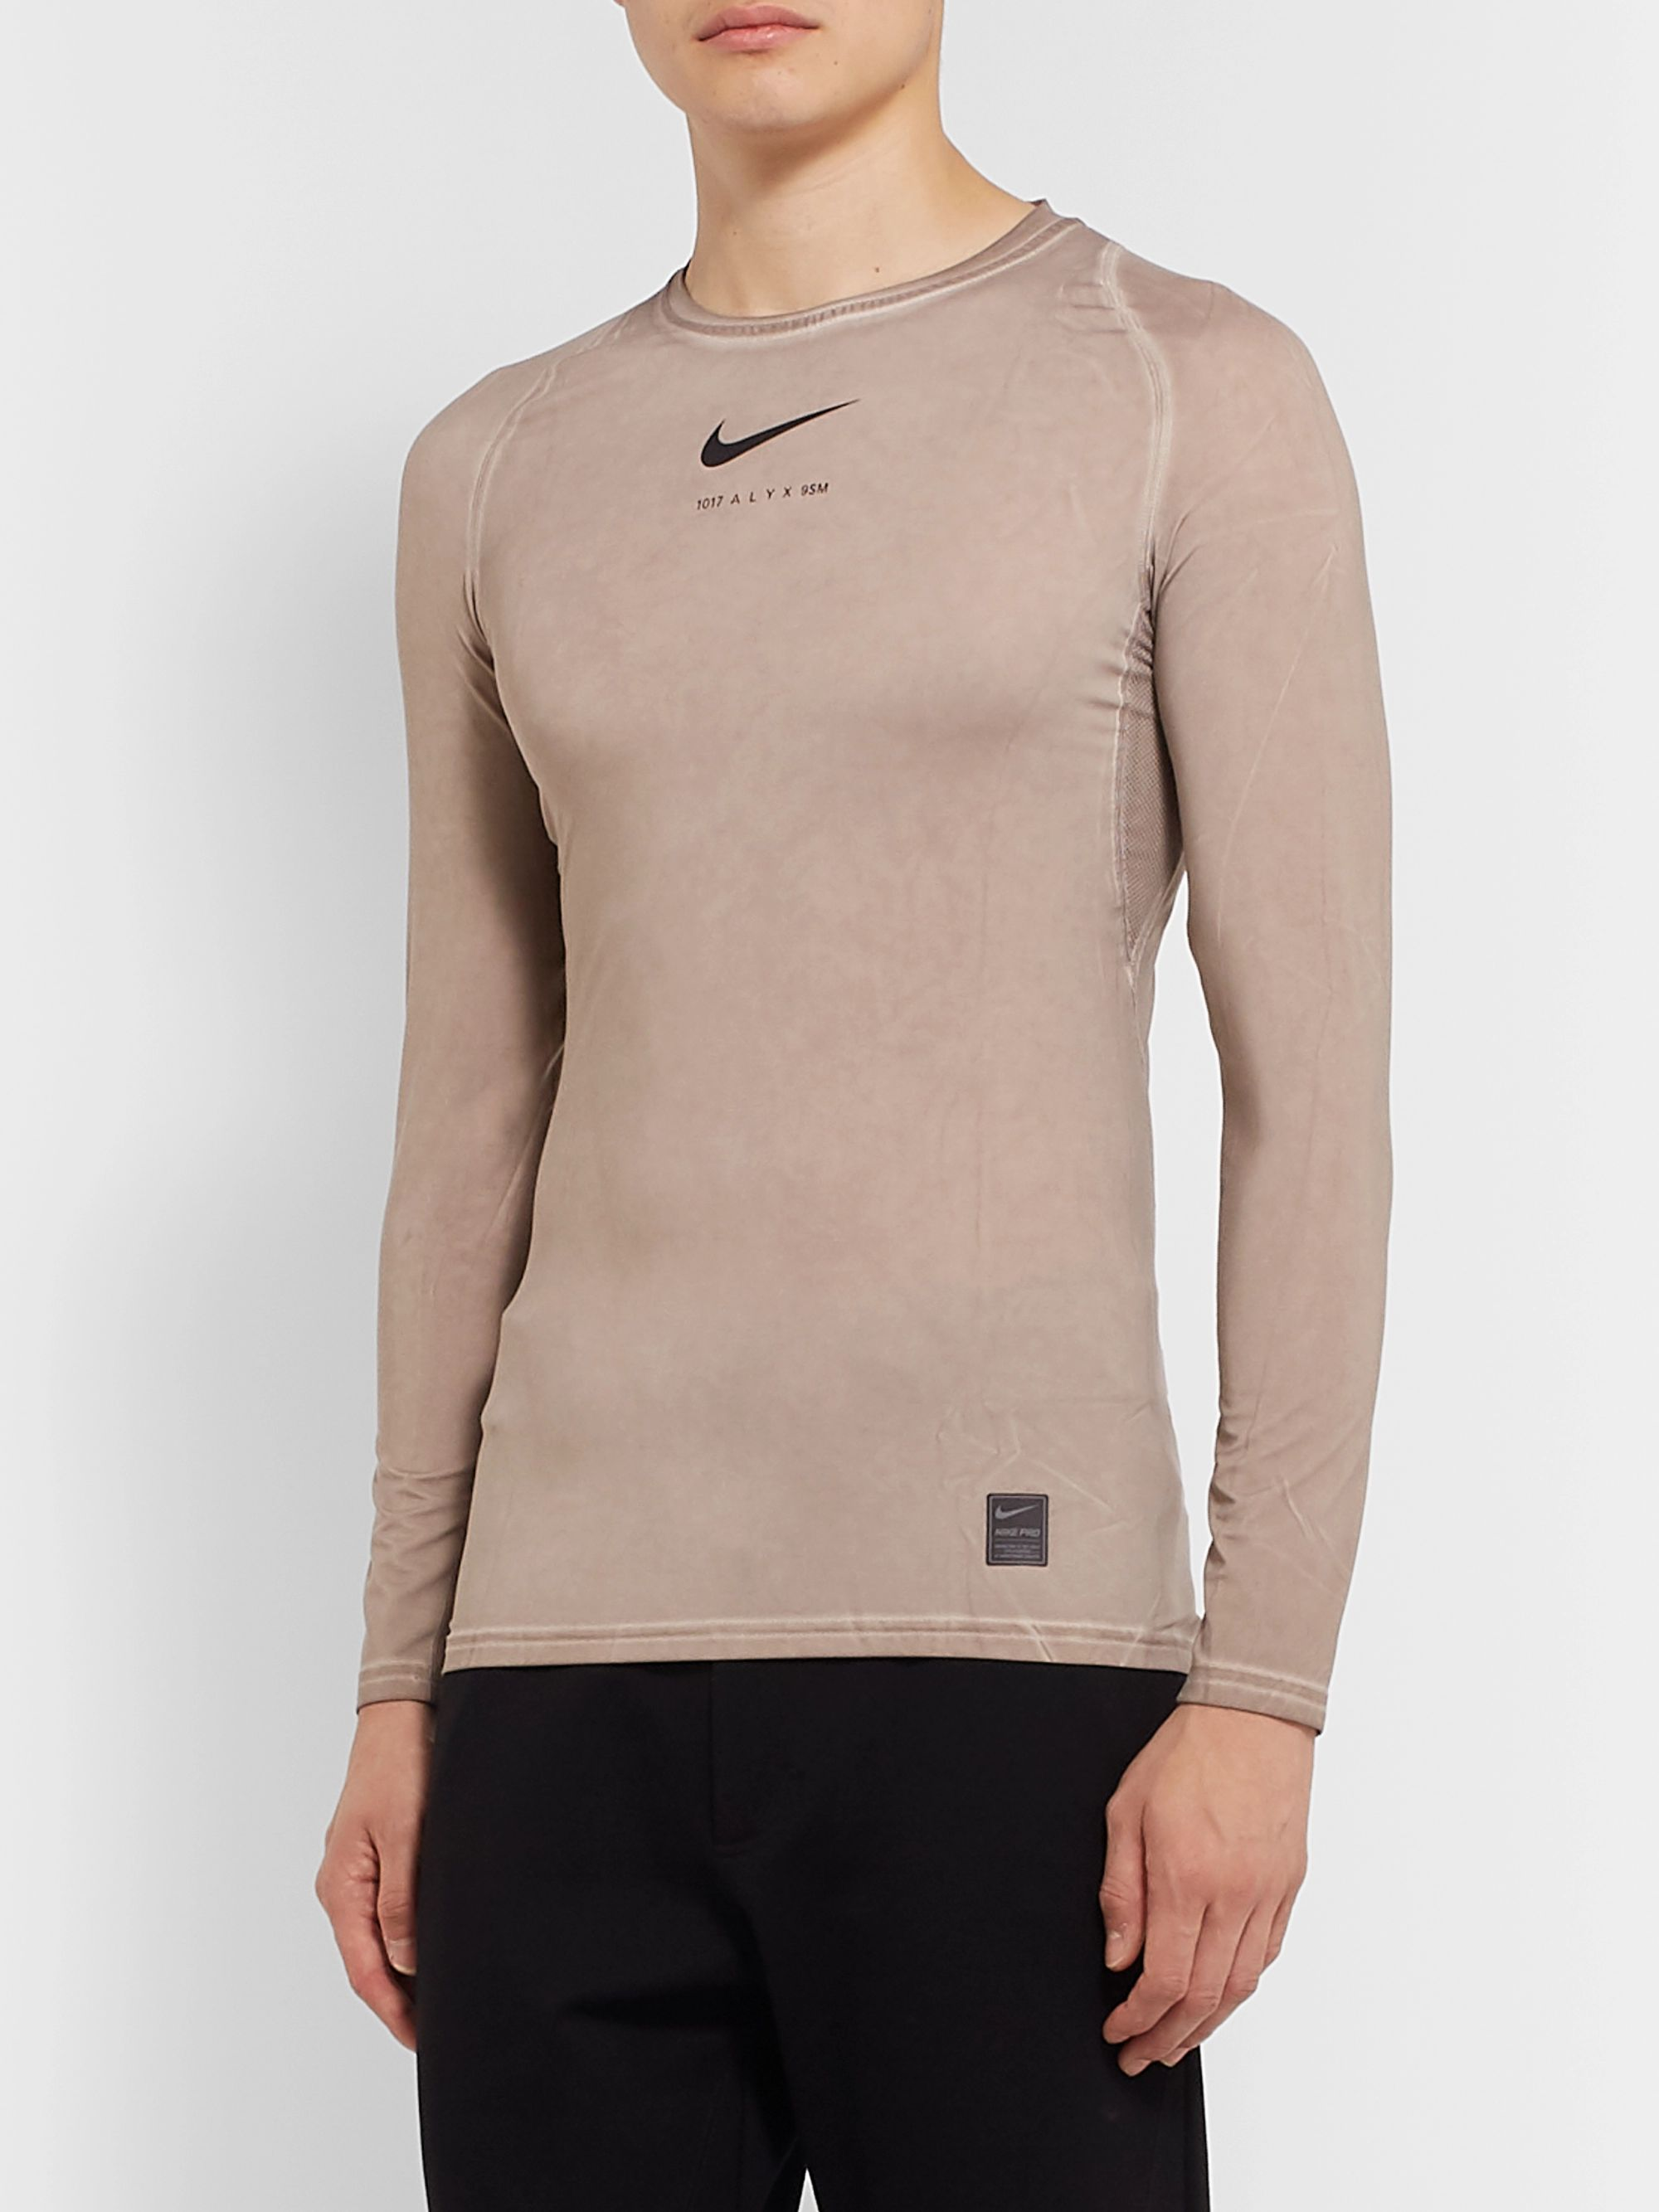 1017 ALYX 9SM + Nike Compression Mesh-Panelled Stretch-Jersey T-Shirt